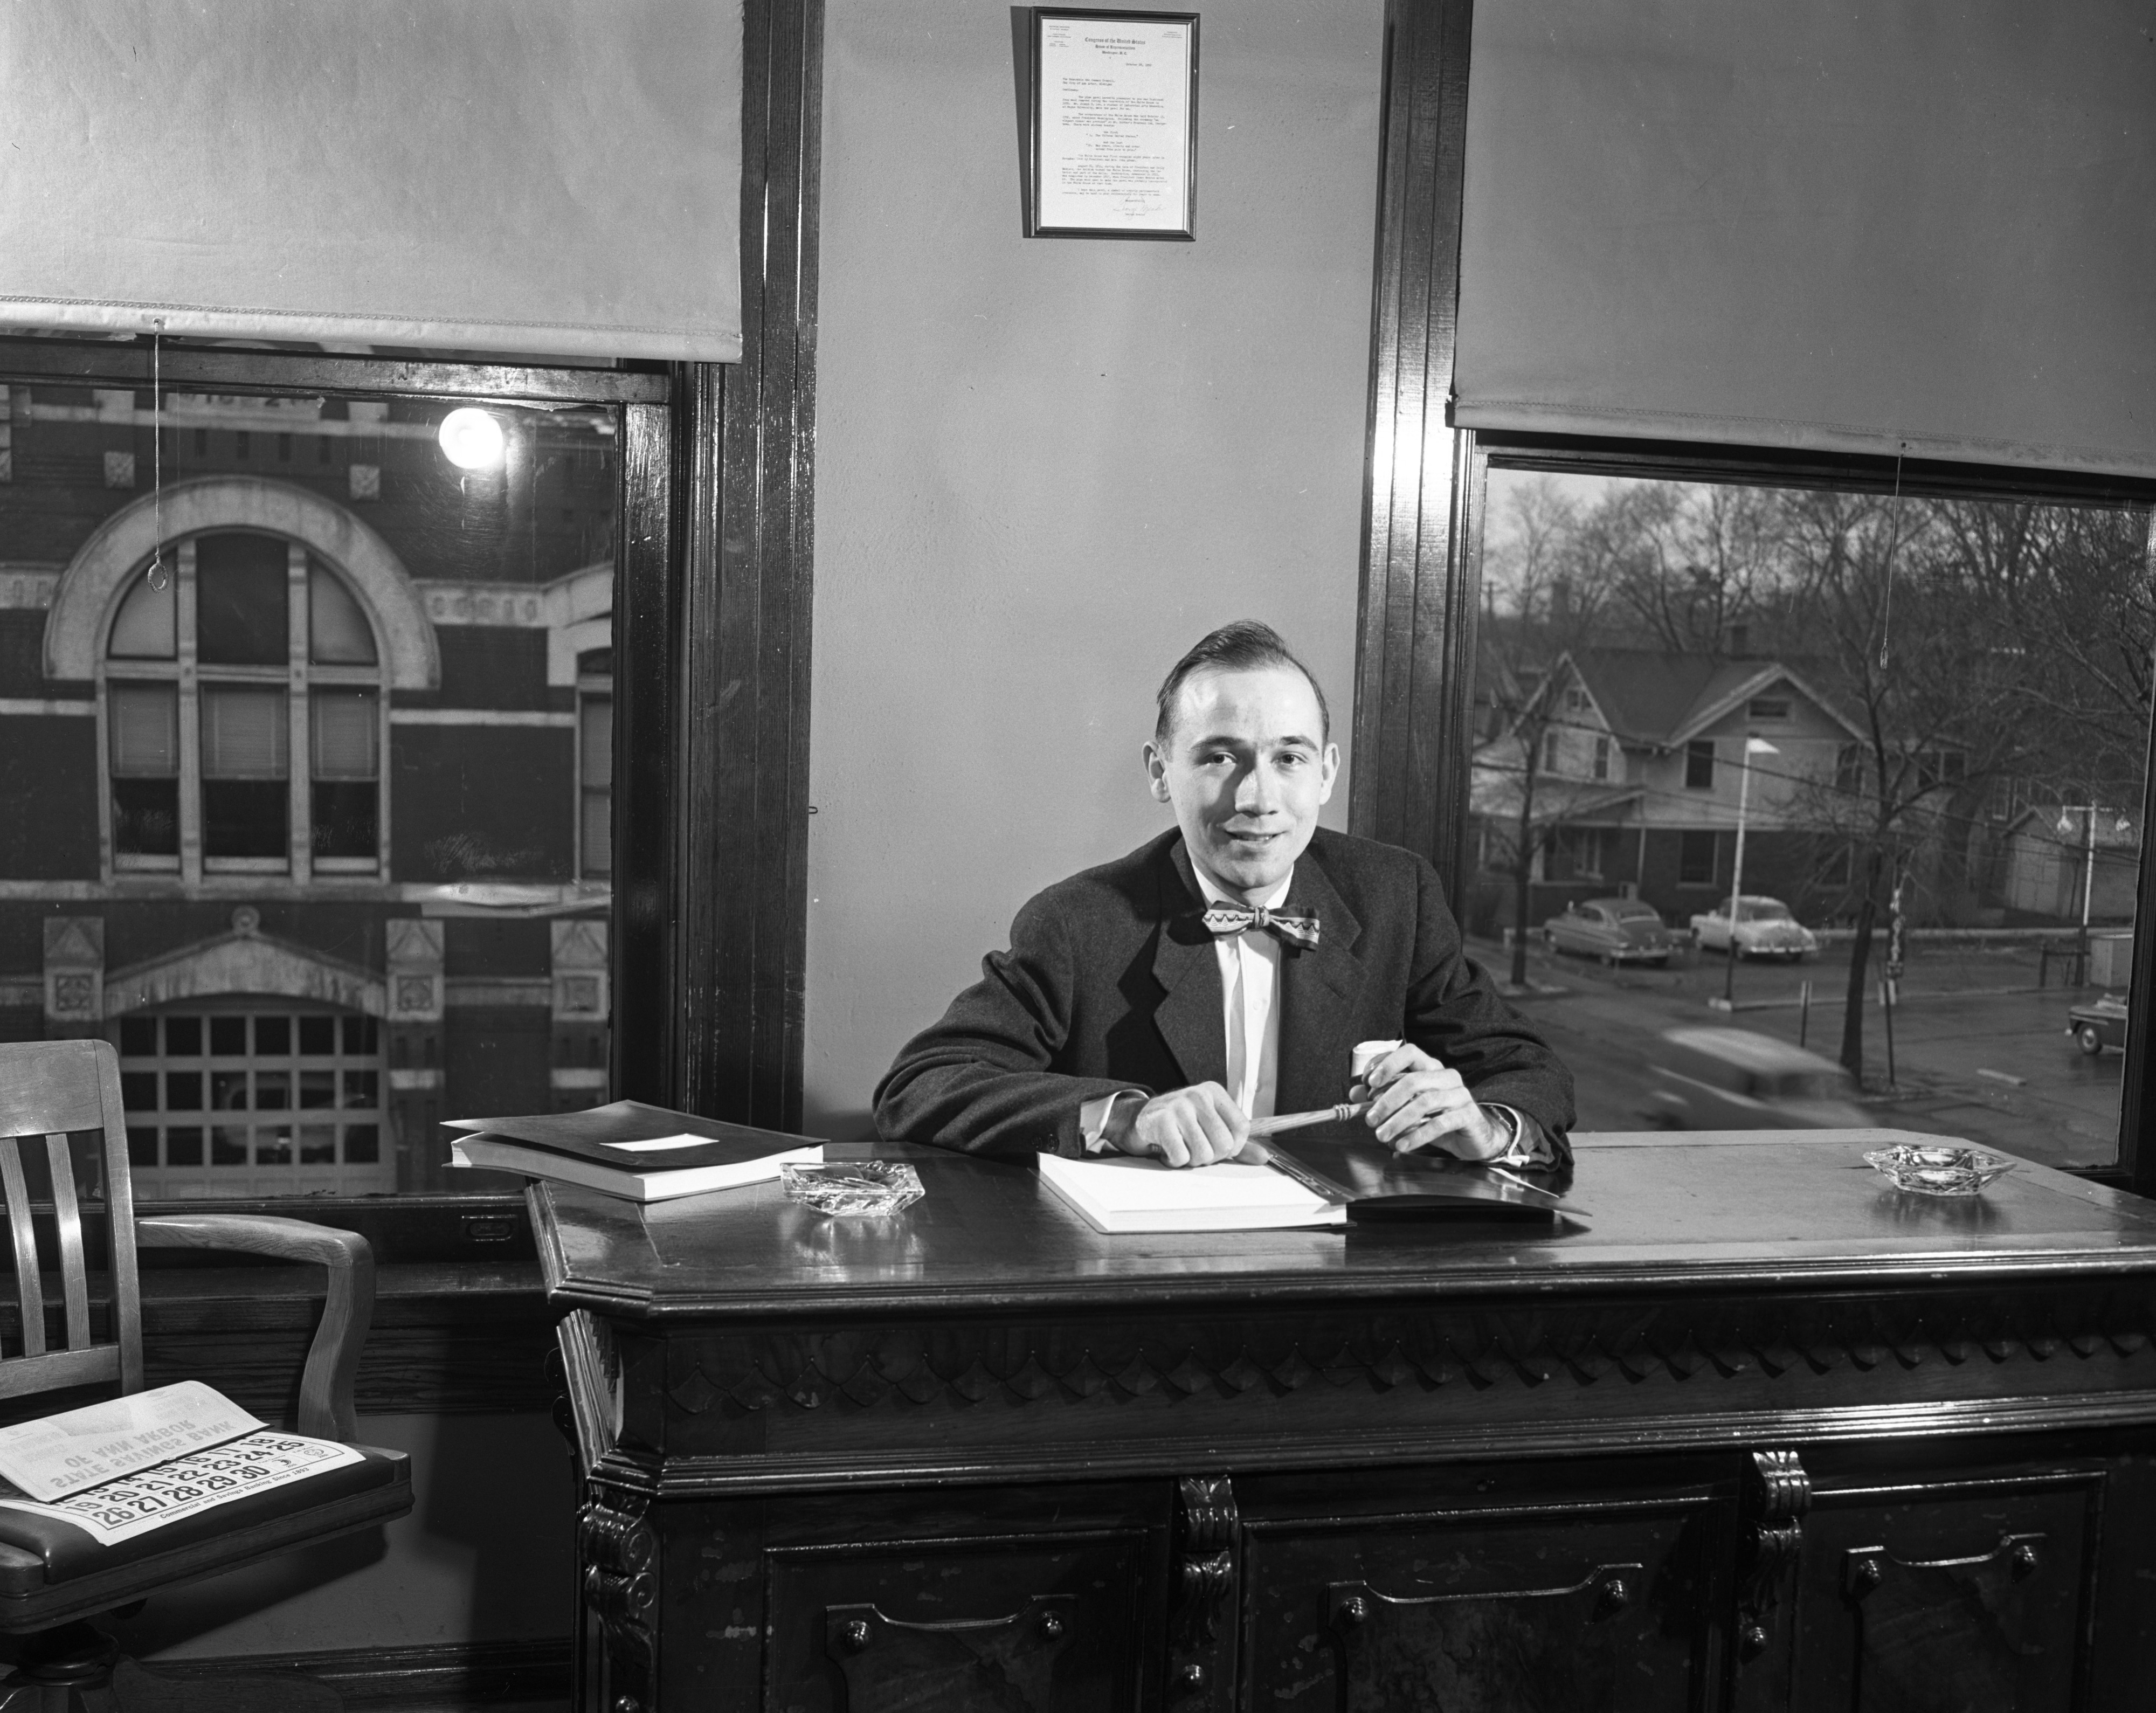 Geroge Wahr Sallade, first time presiding as president of Ann Arbor's City Council, April 1953 image